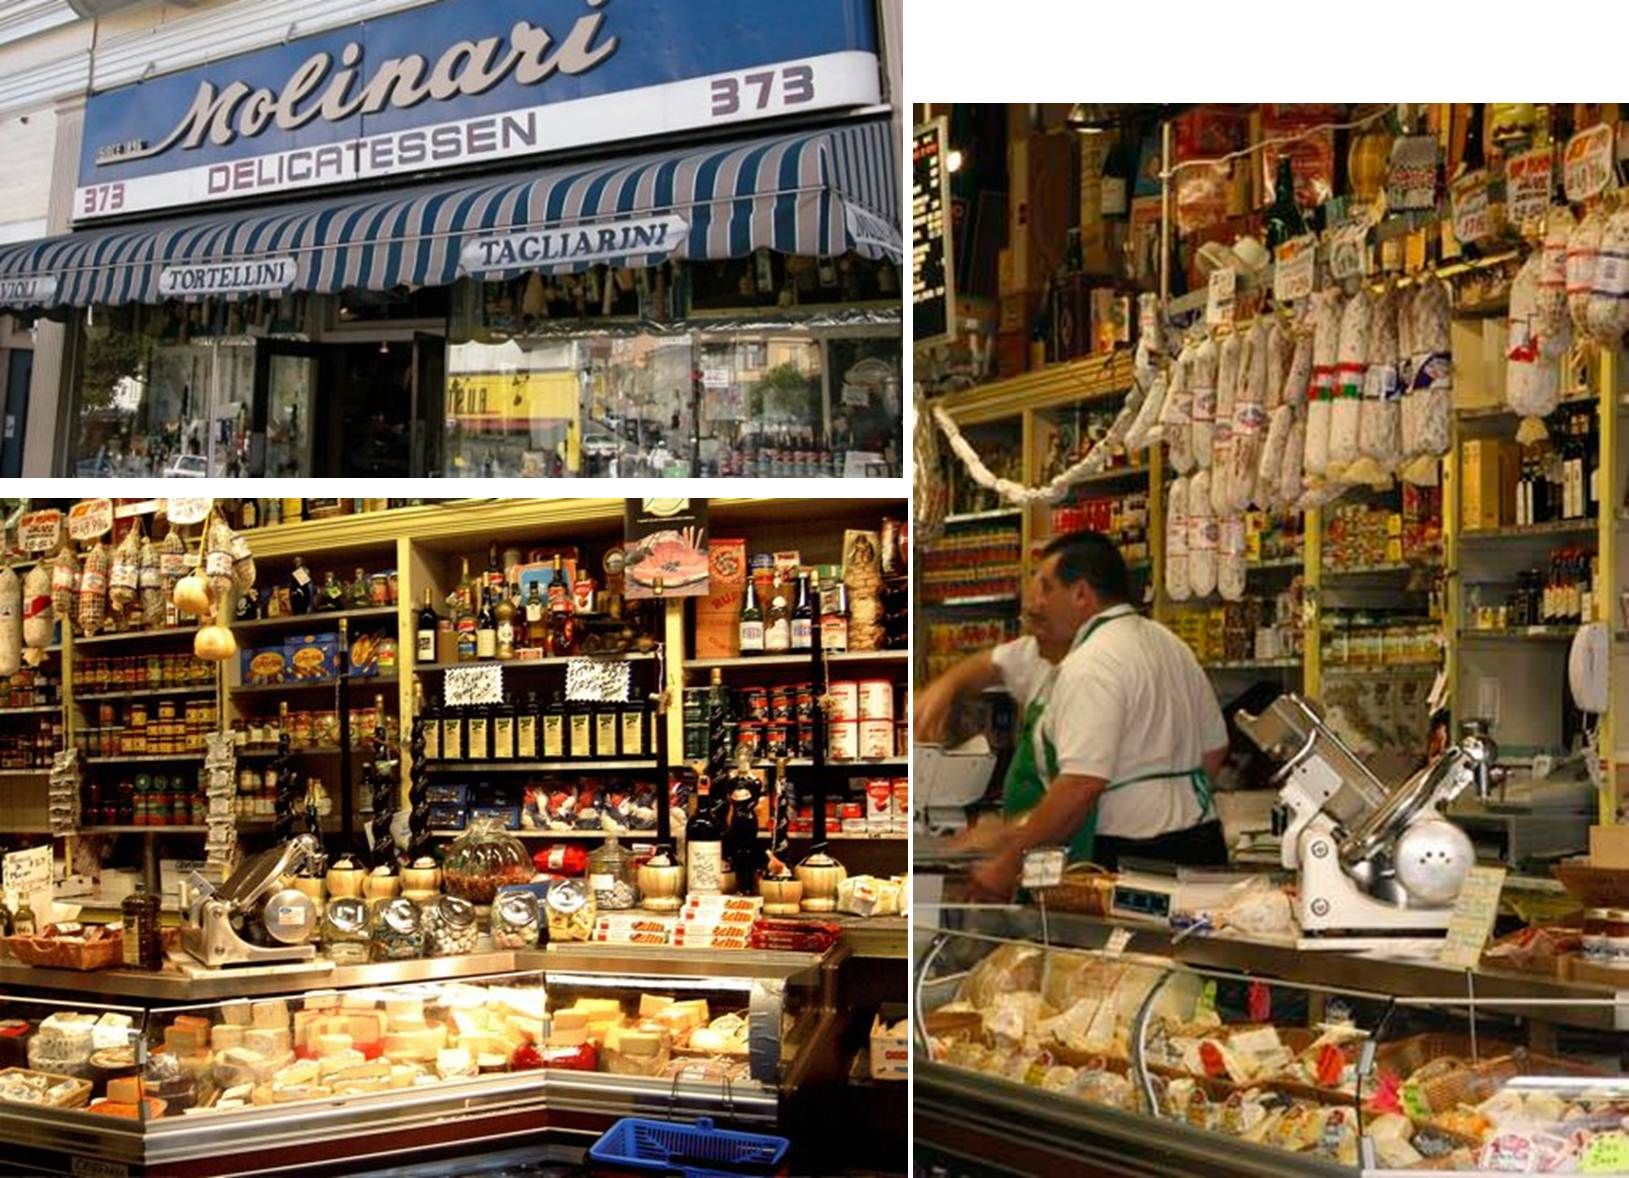 Molinari S Deli In San Francisco I Could Spend Hours In Here Exploring All The Delicious Goodies The Stock Sandwich Shops Best Sandwich San Francisco Travel